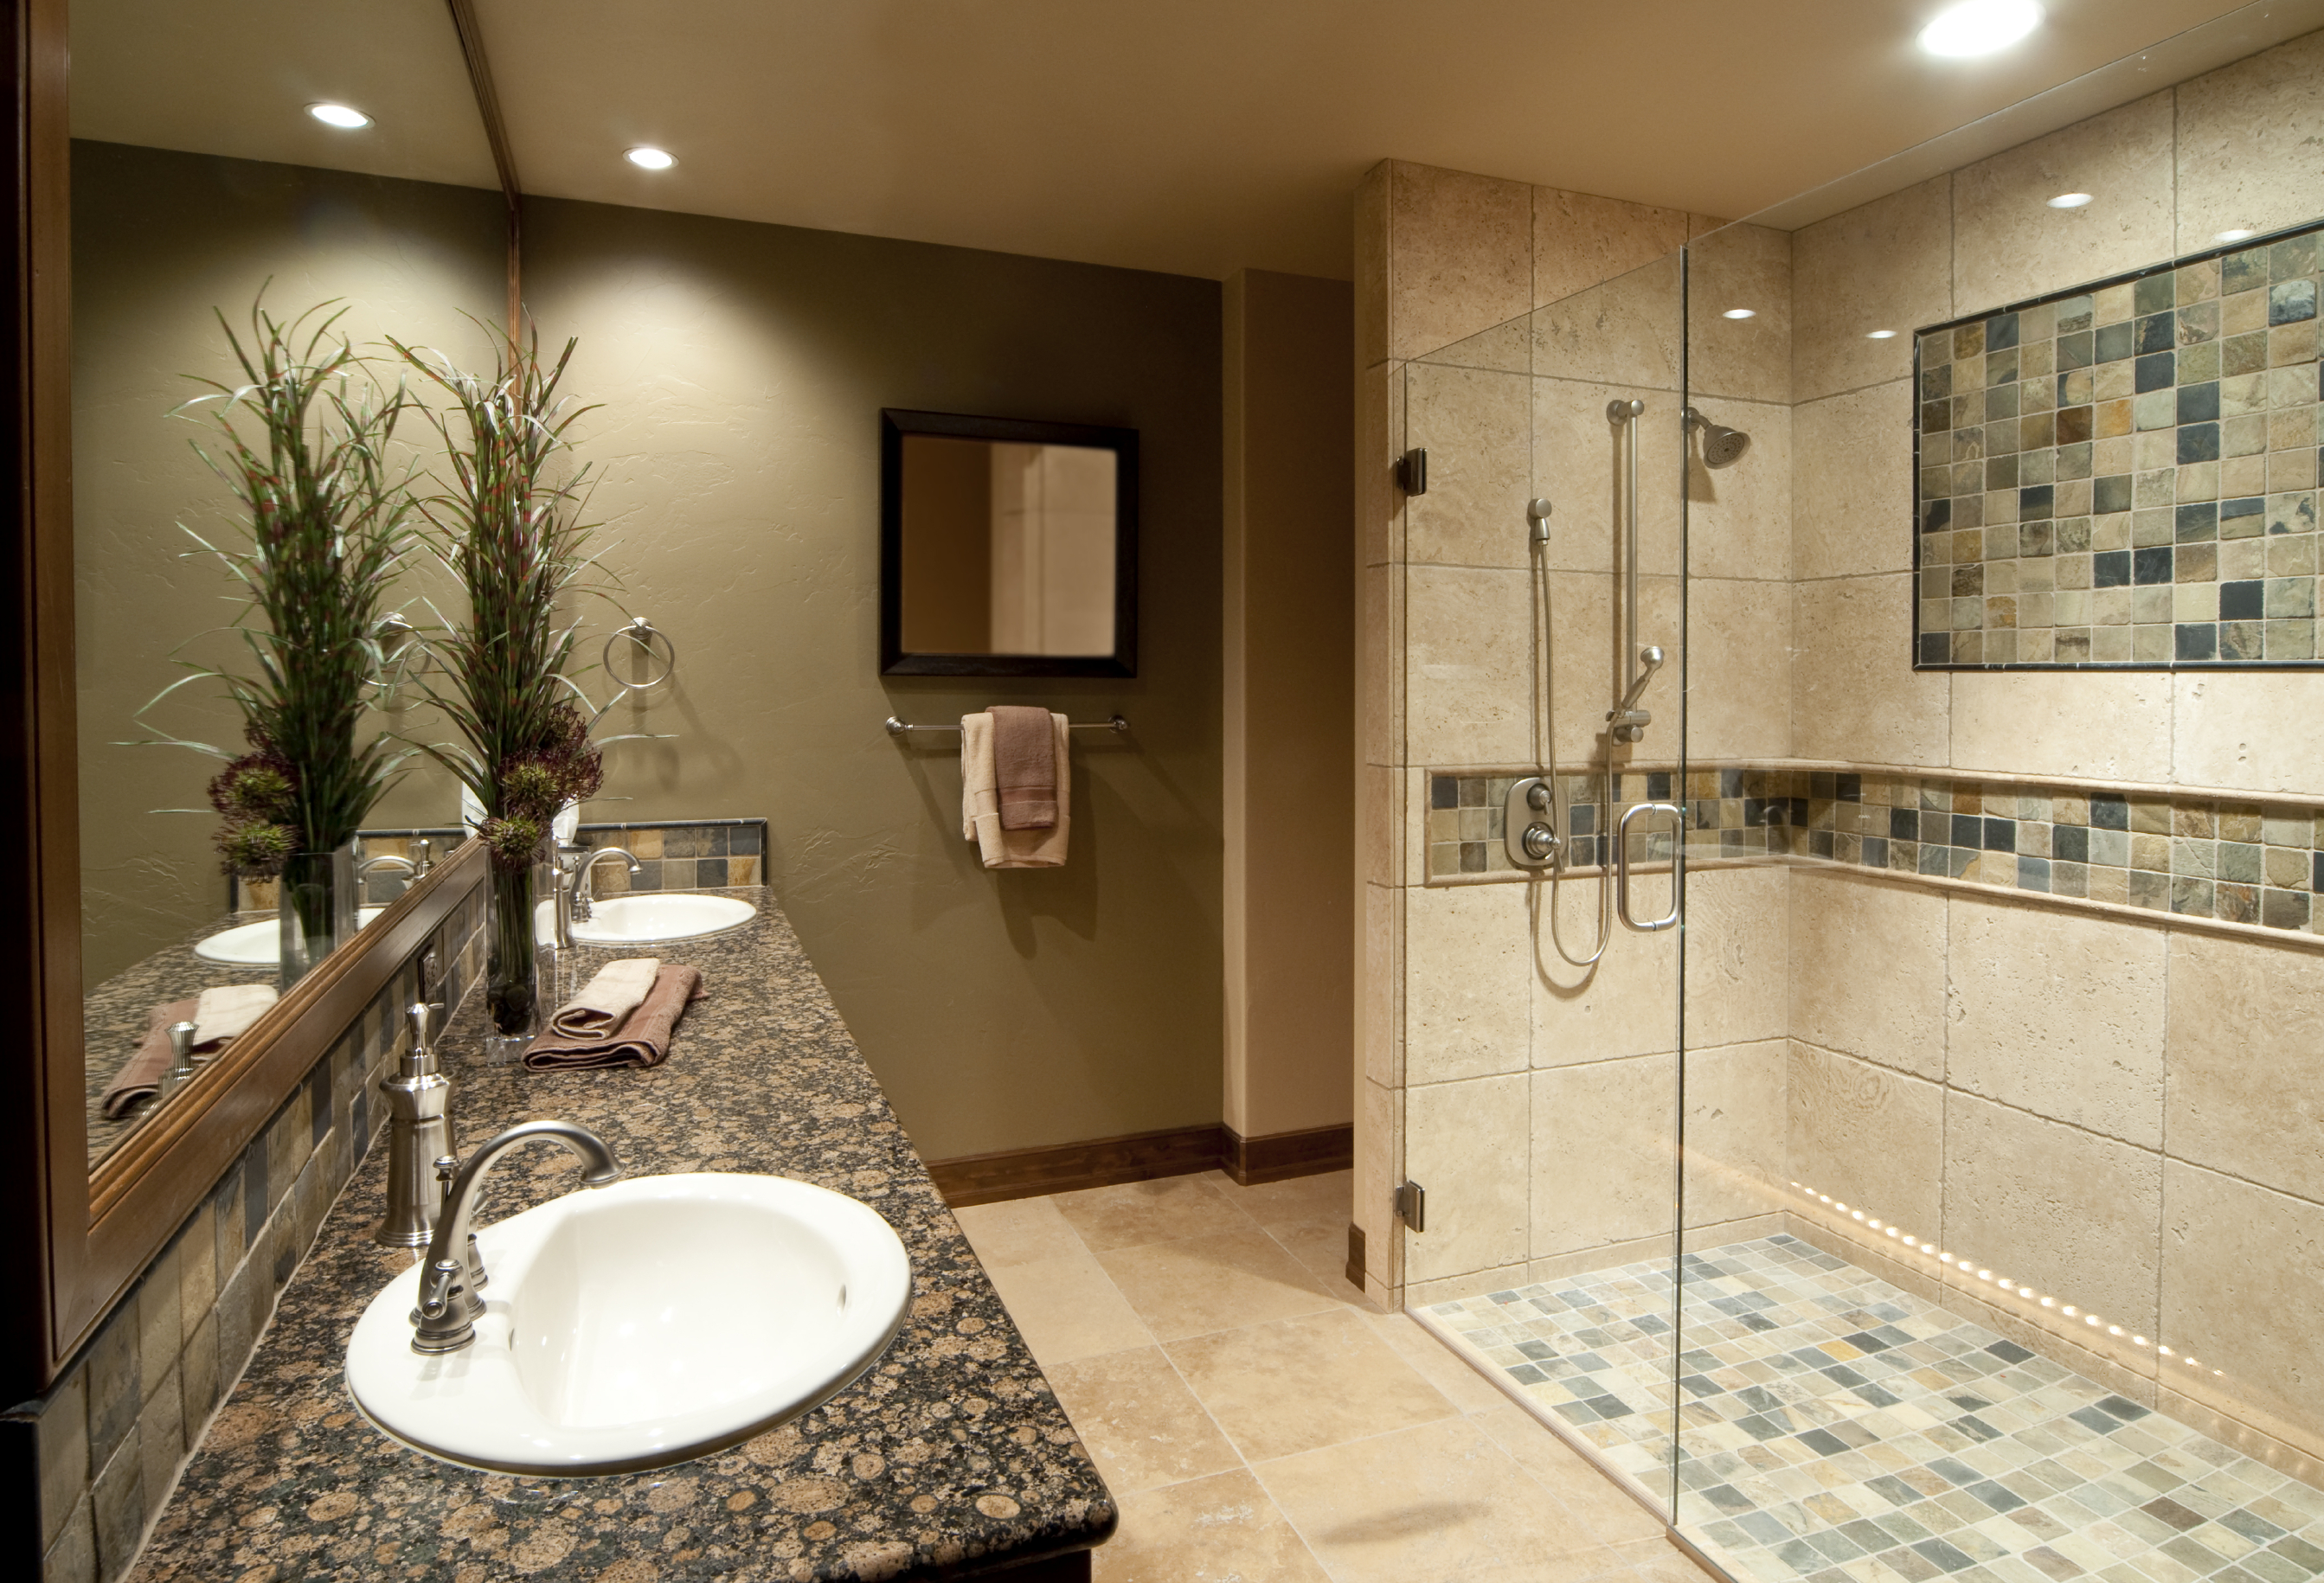 Bathroom Remodel Tips tips for bathroom remodeling